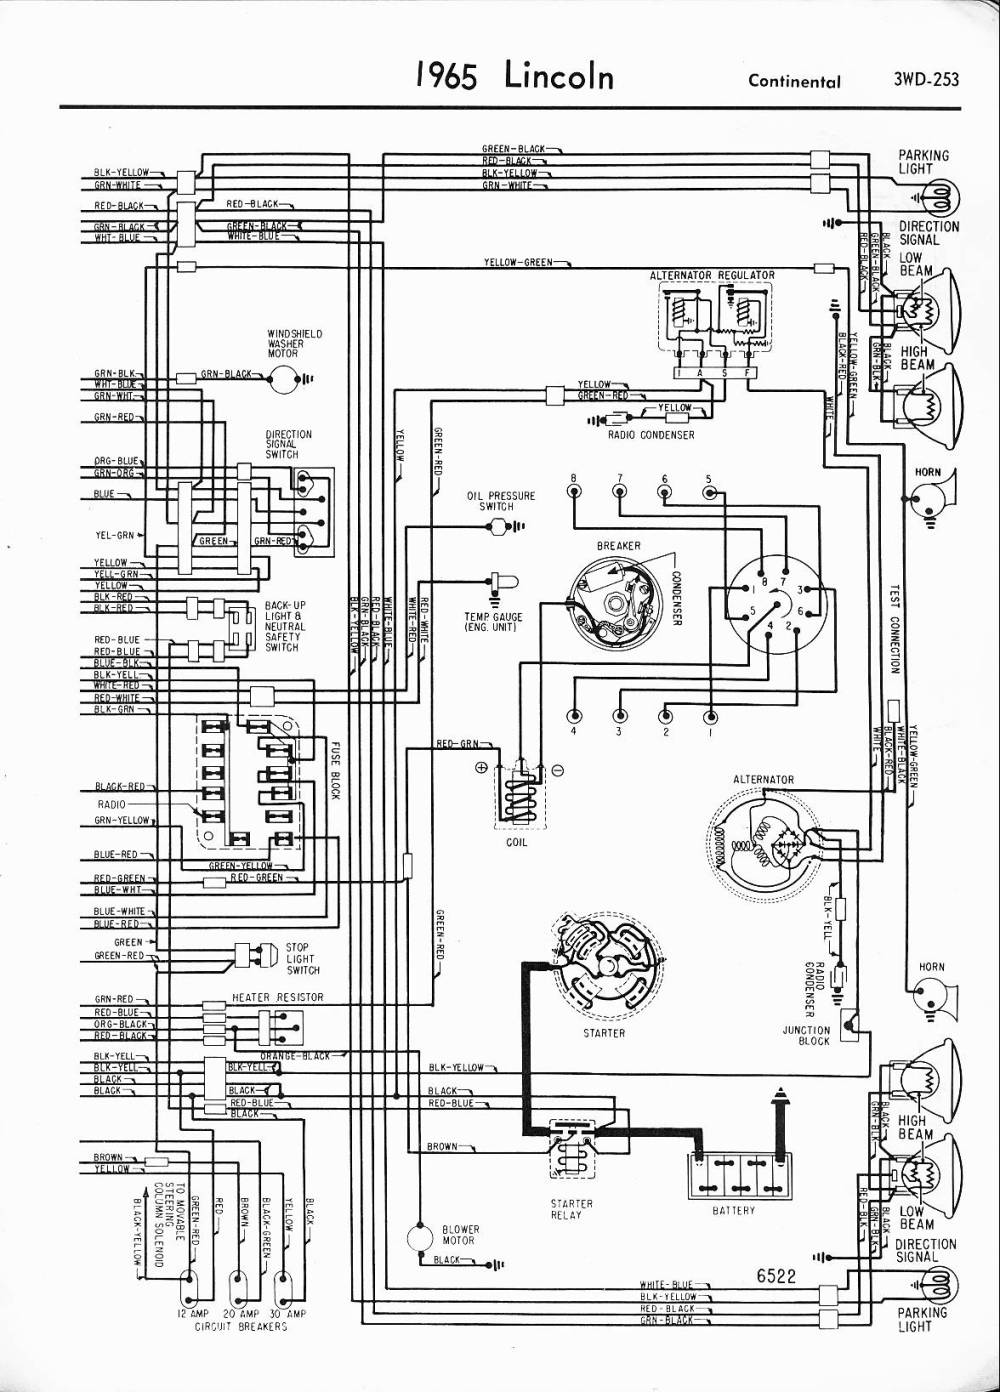 medium resolution of lincoln wiring diagrams 1957 1965 1999 club car wiring diagram 1965 lincoln right half